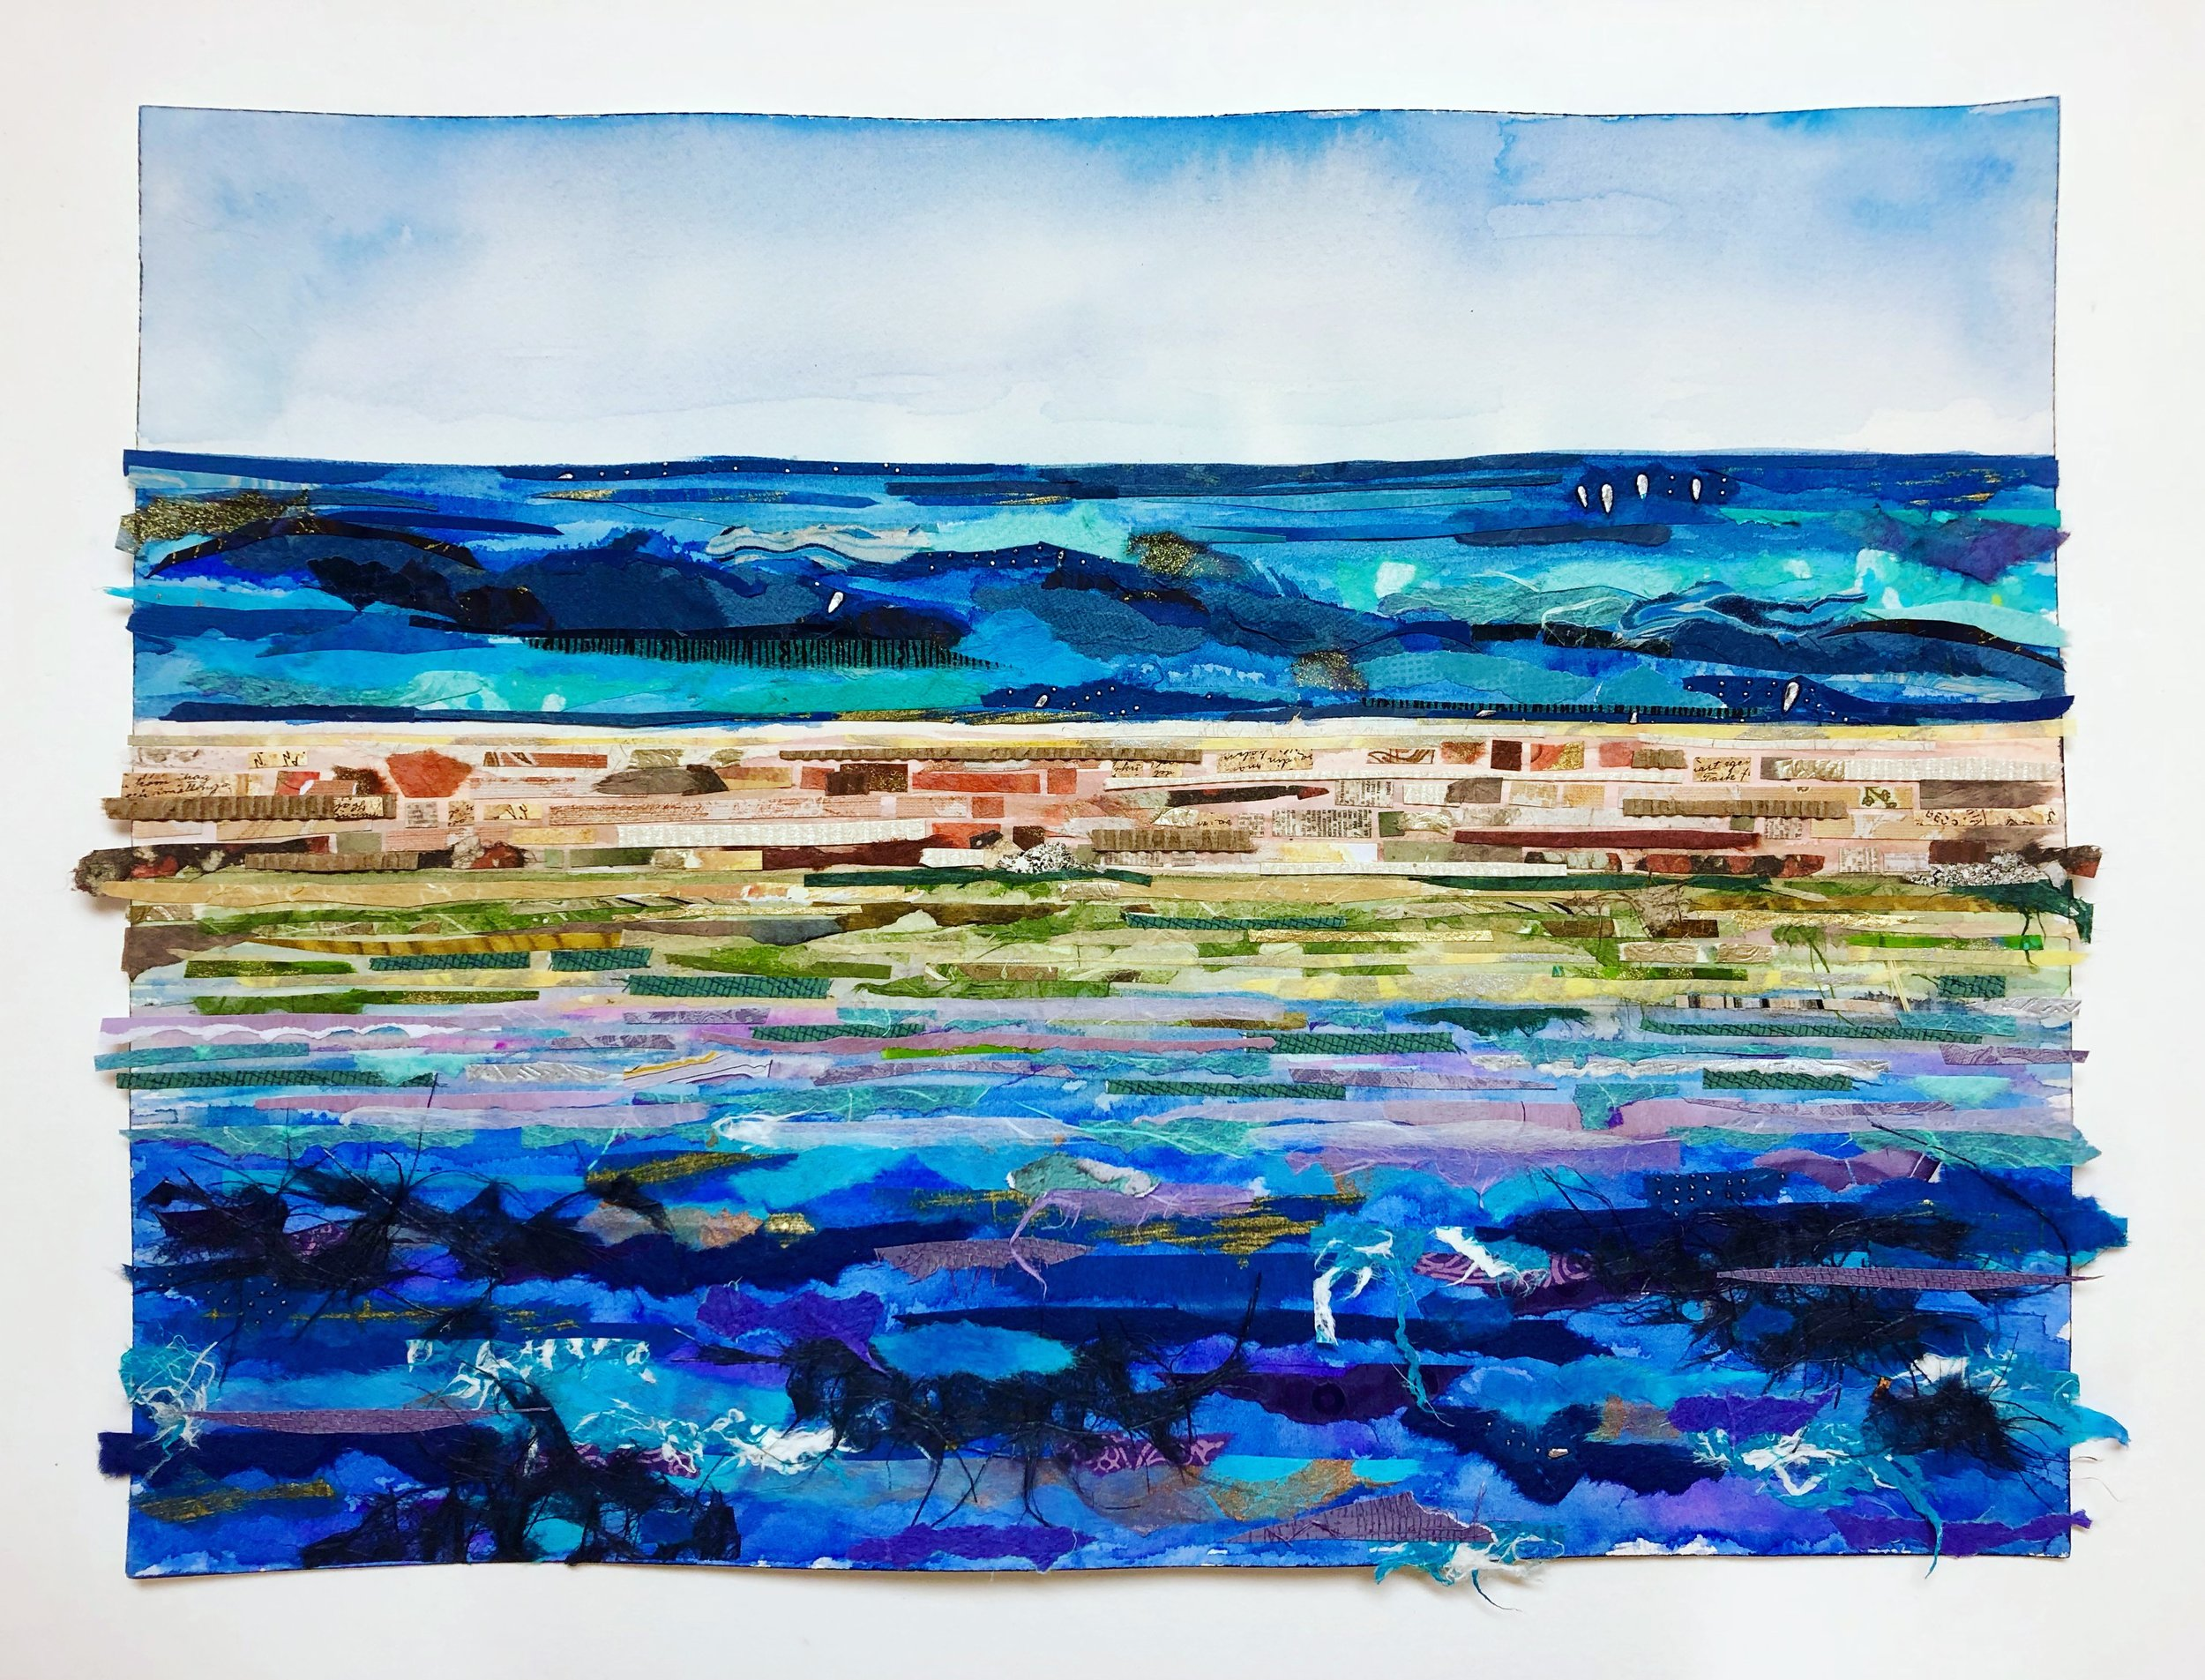 View out to Sea, Dry Tortuga National Park - watercolor and paper collage